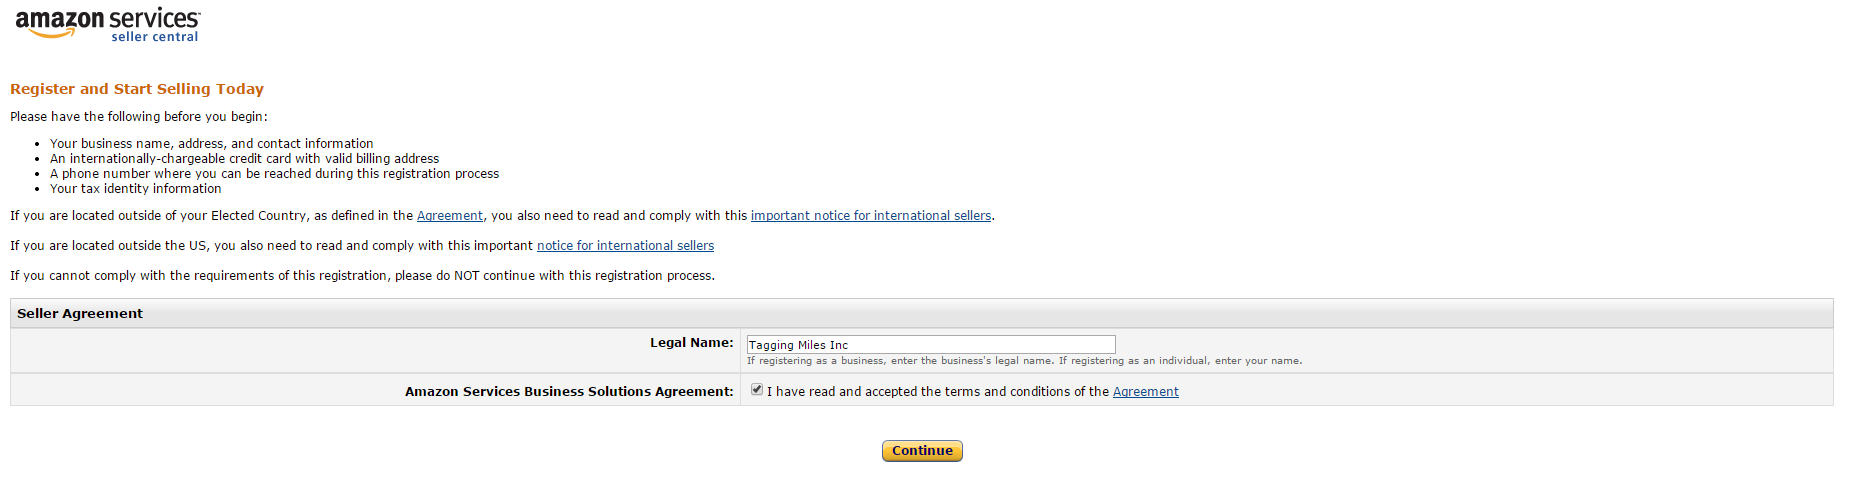 Registering For Amazon Seller Tagging Miles